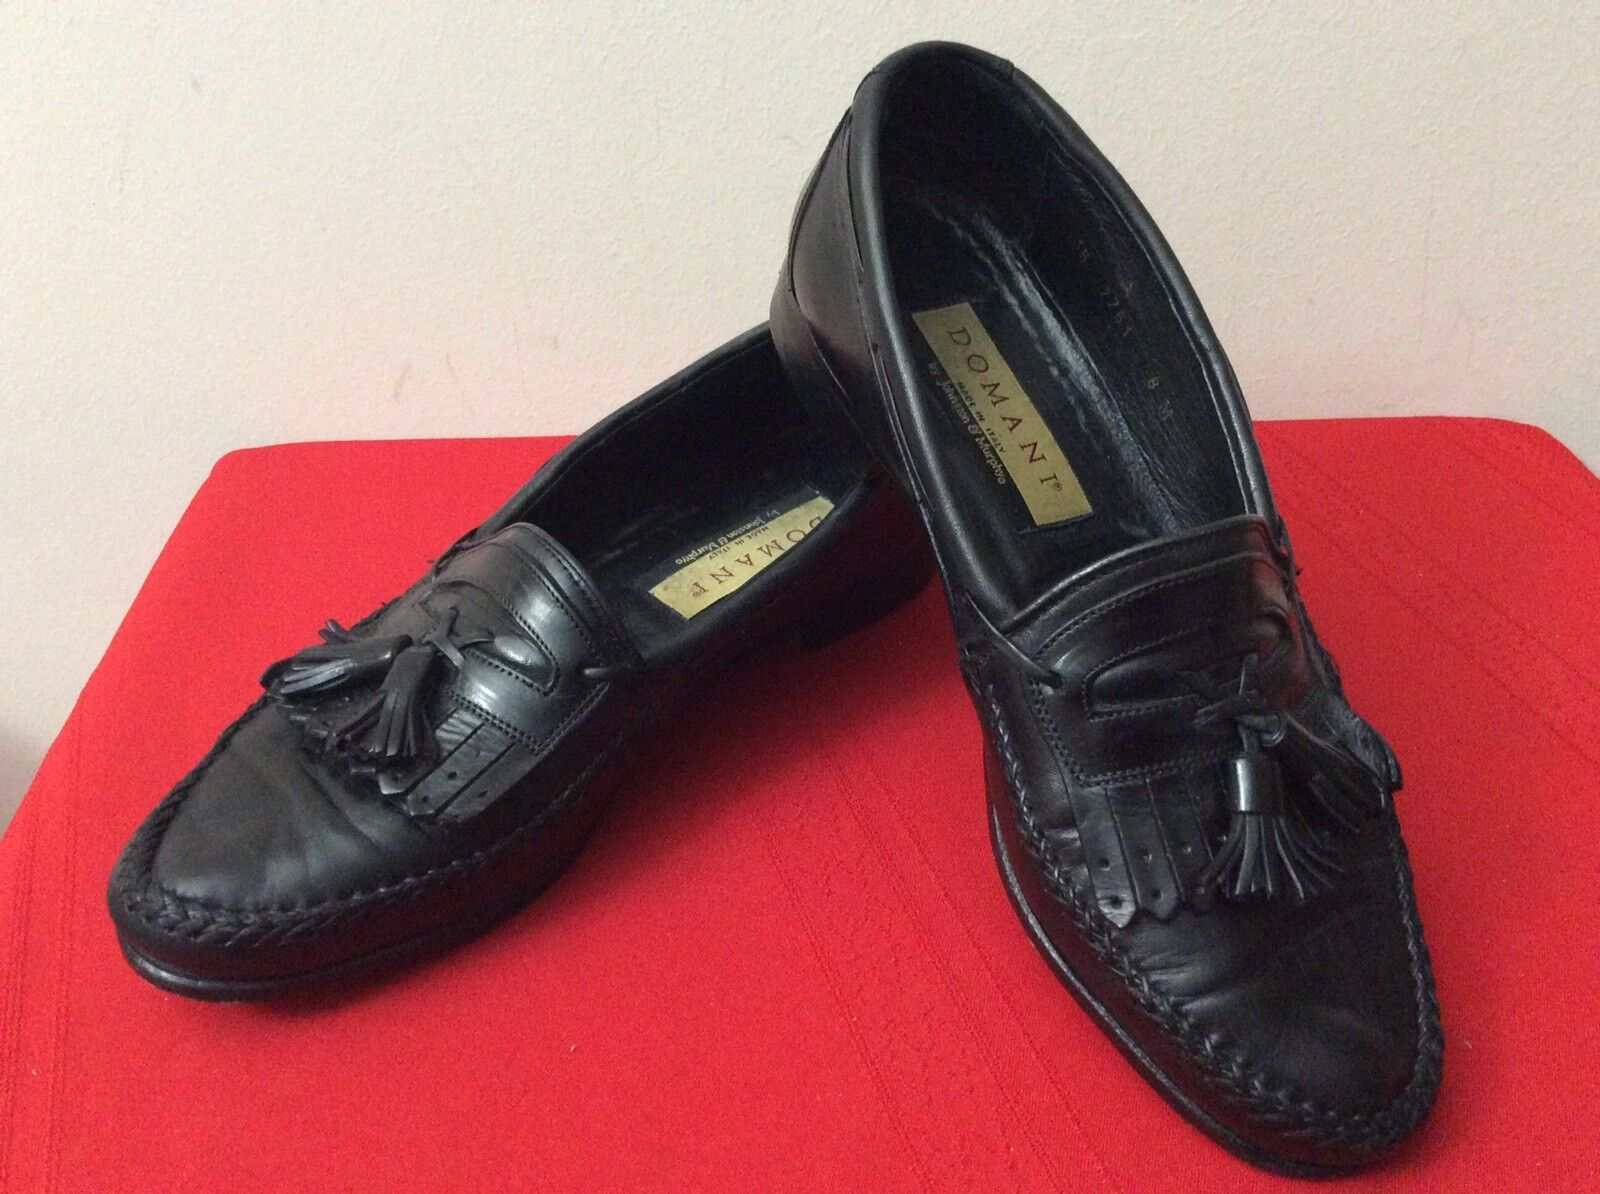 JOHNSTON AND SZ MURPHY DOMANI KILTED TASSEL LOAFER SHOES MENS SZ AND 8 BLK (bx25) 55c800